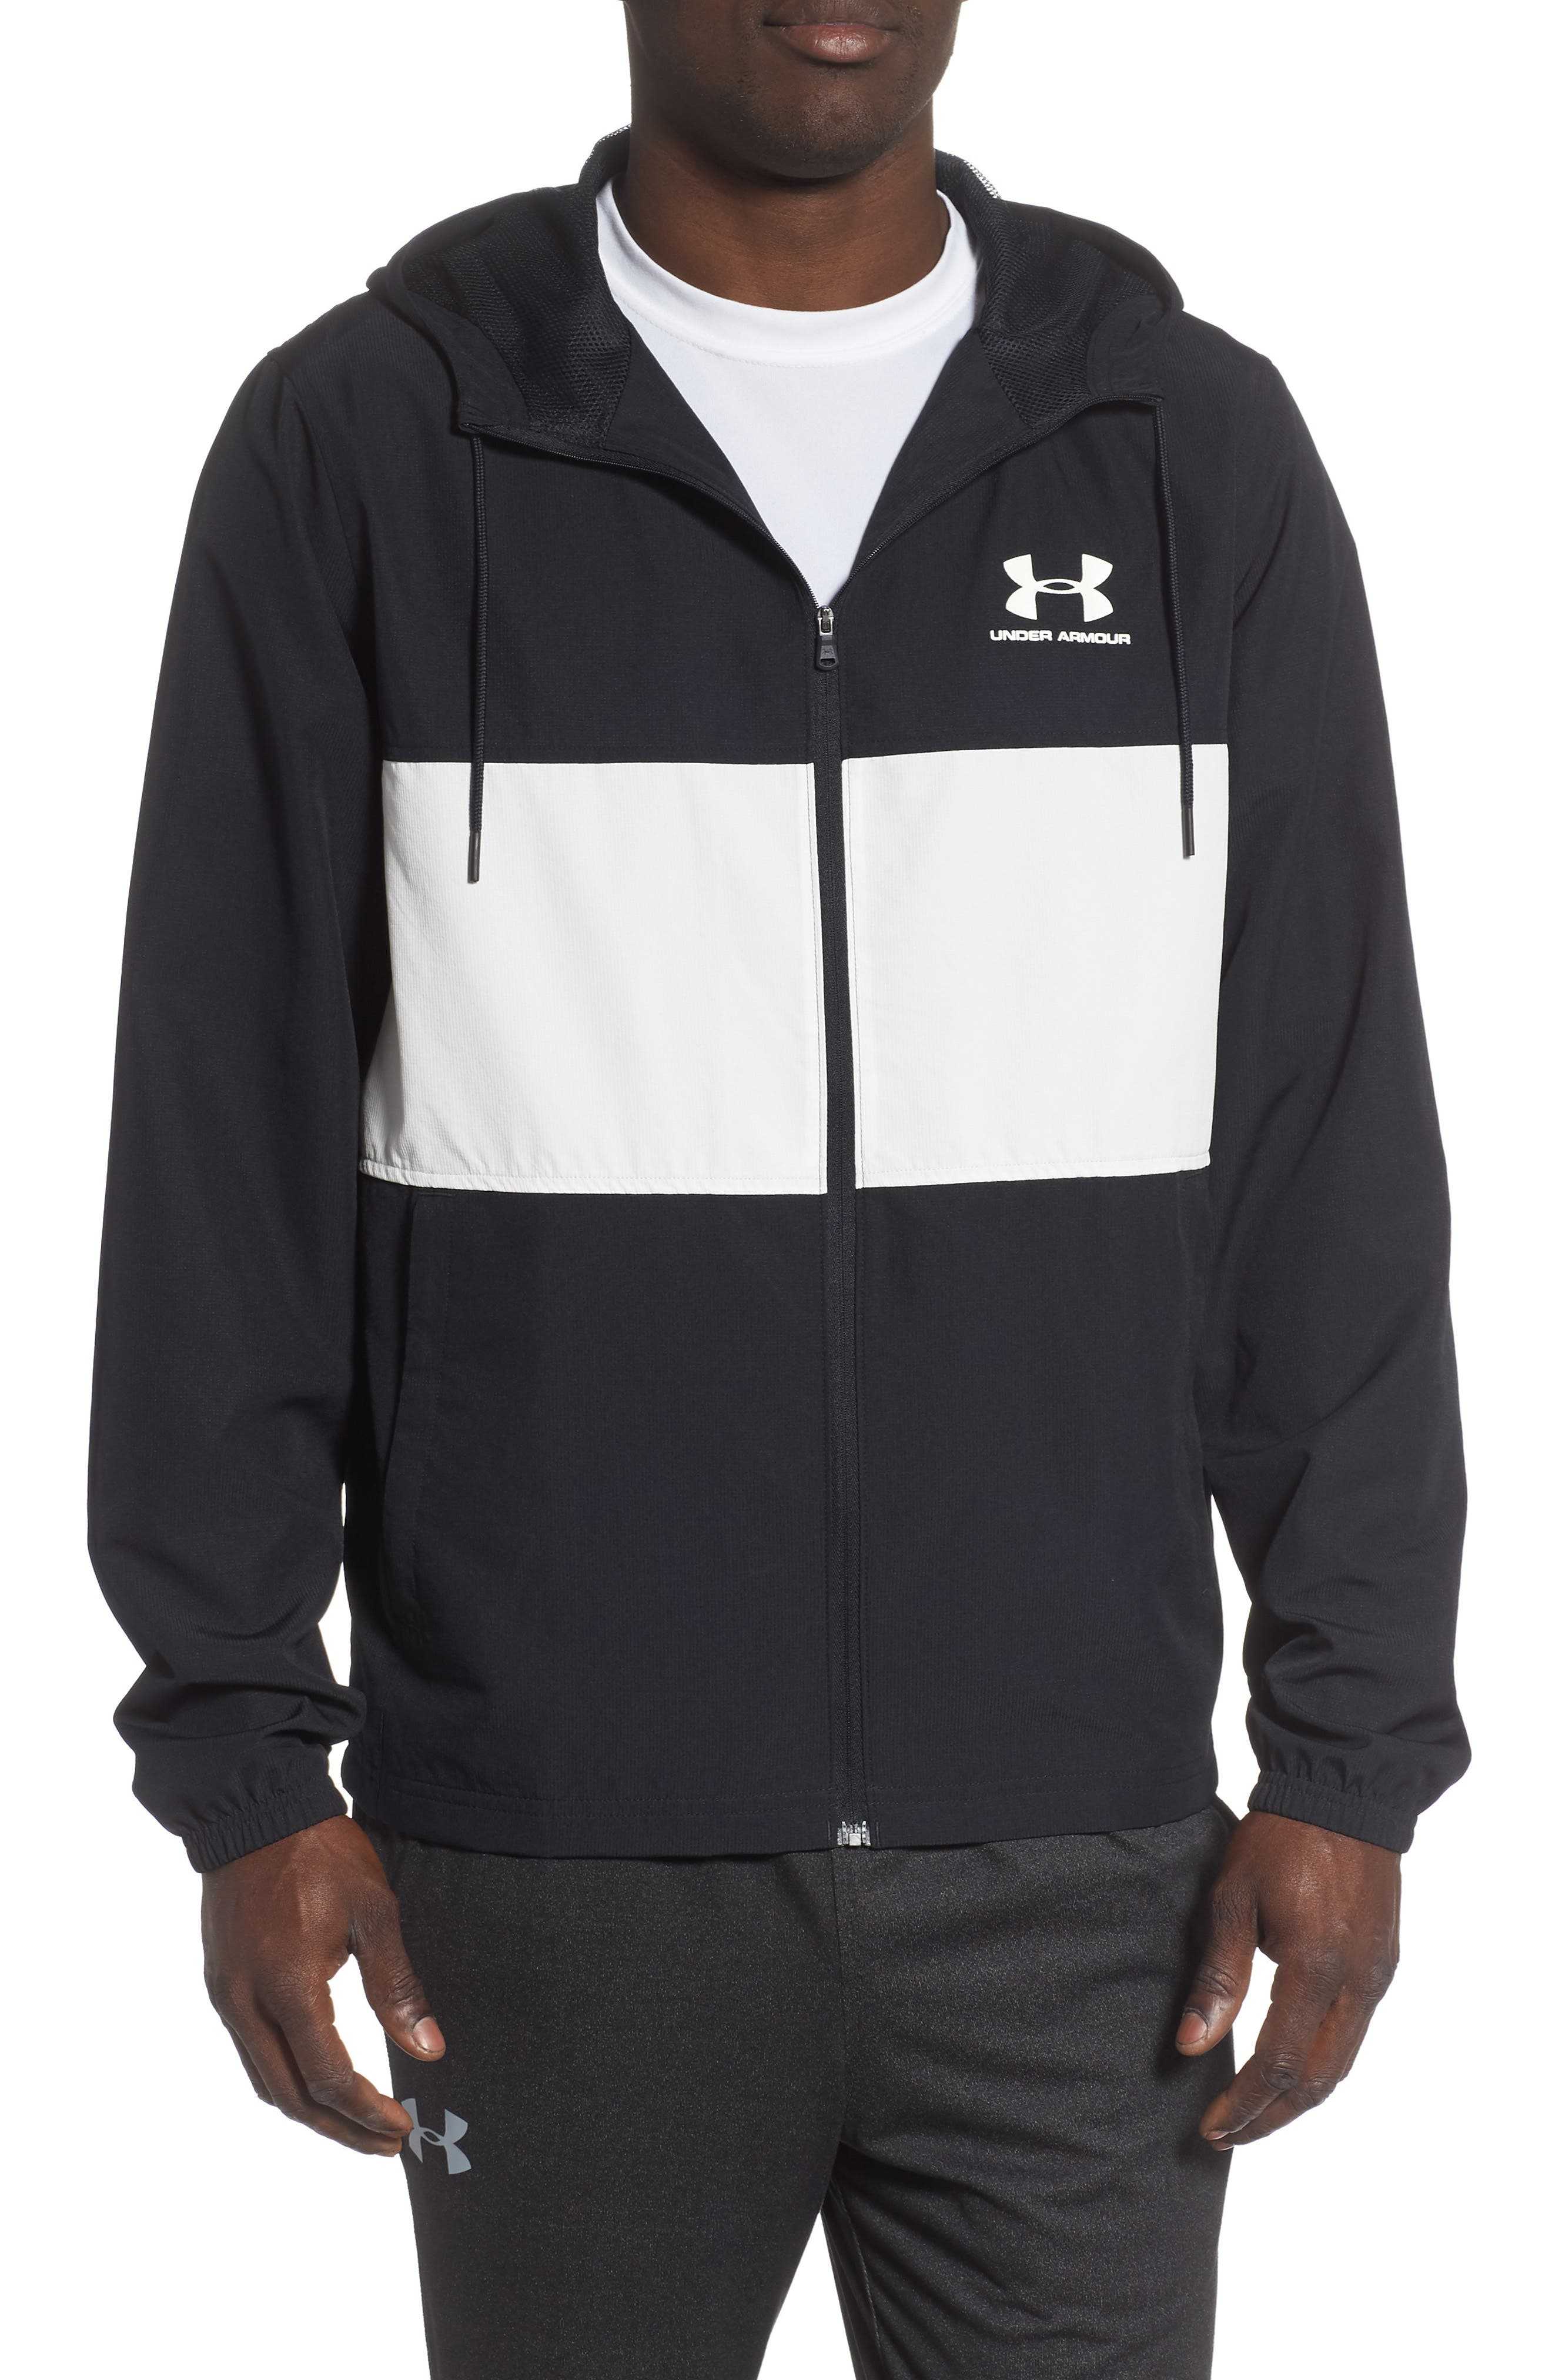 Siphon Hooded Jacket by Under Armour